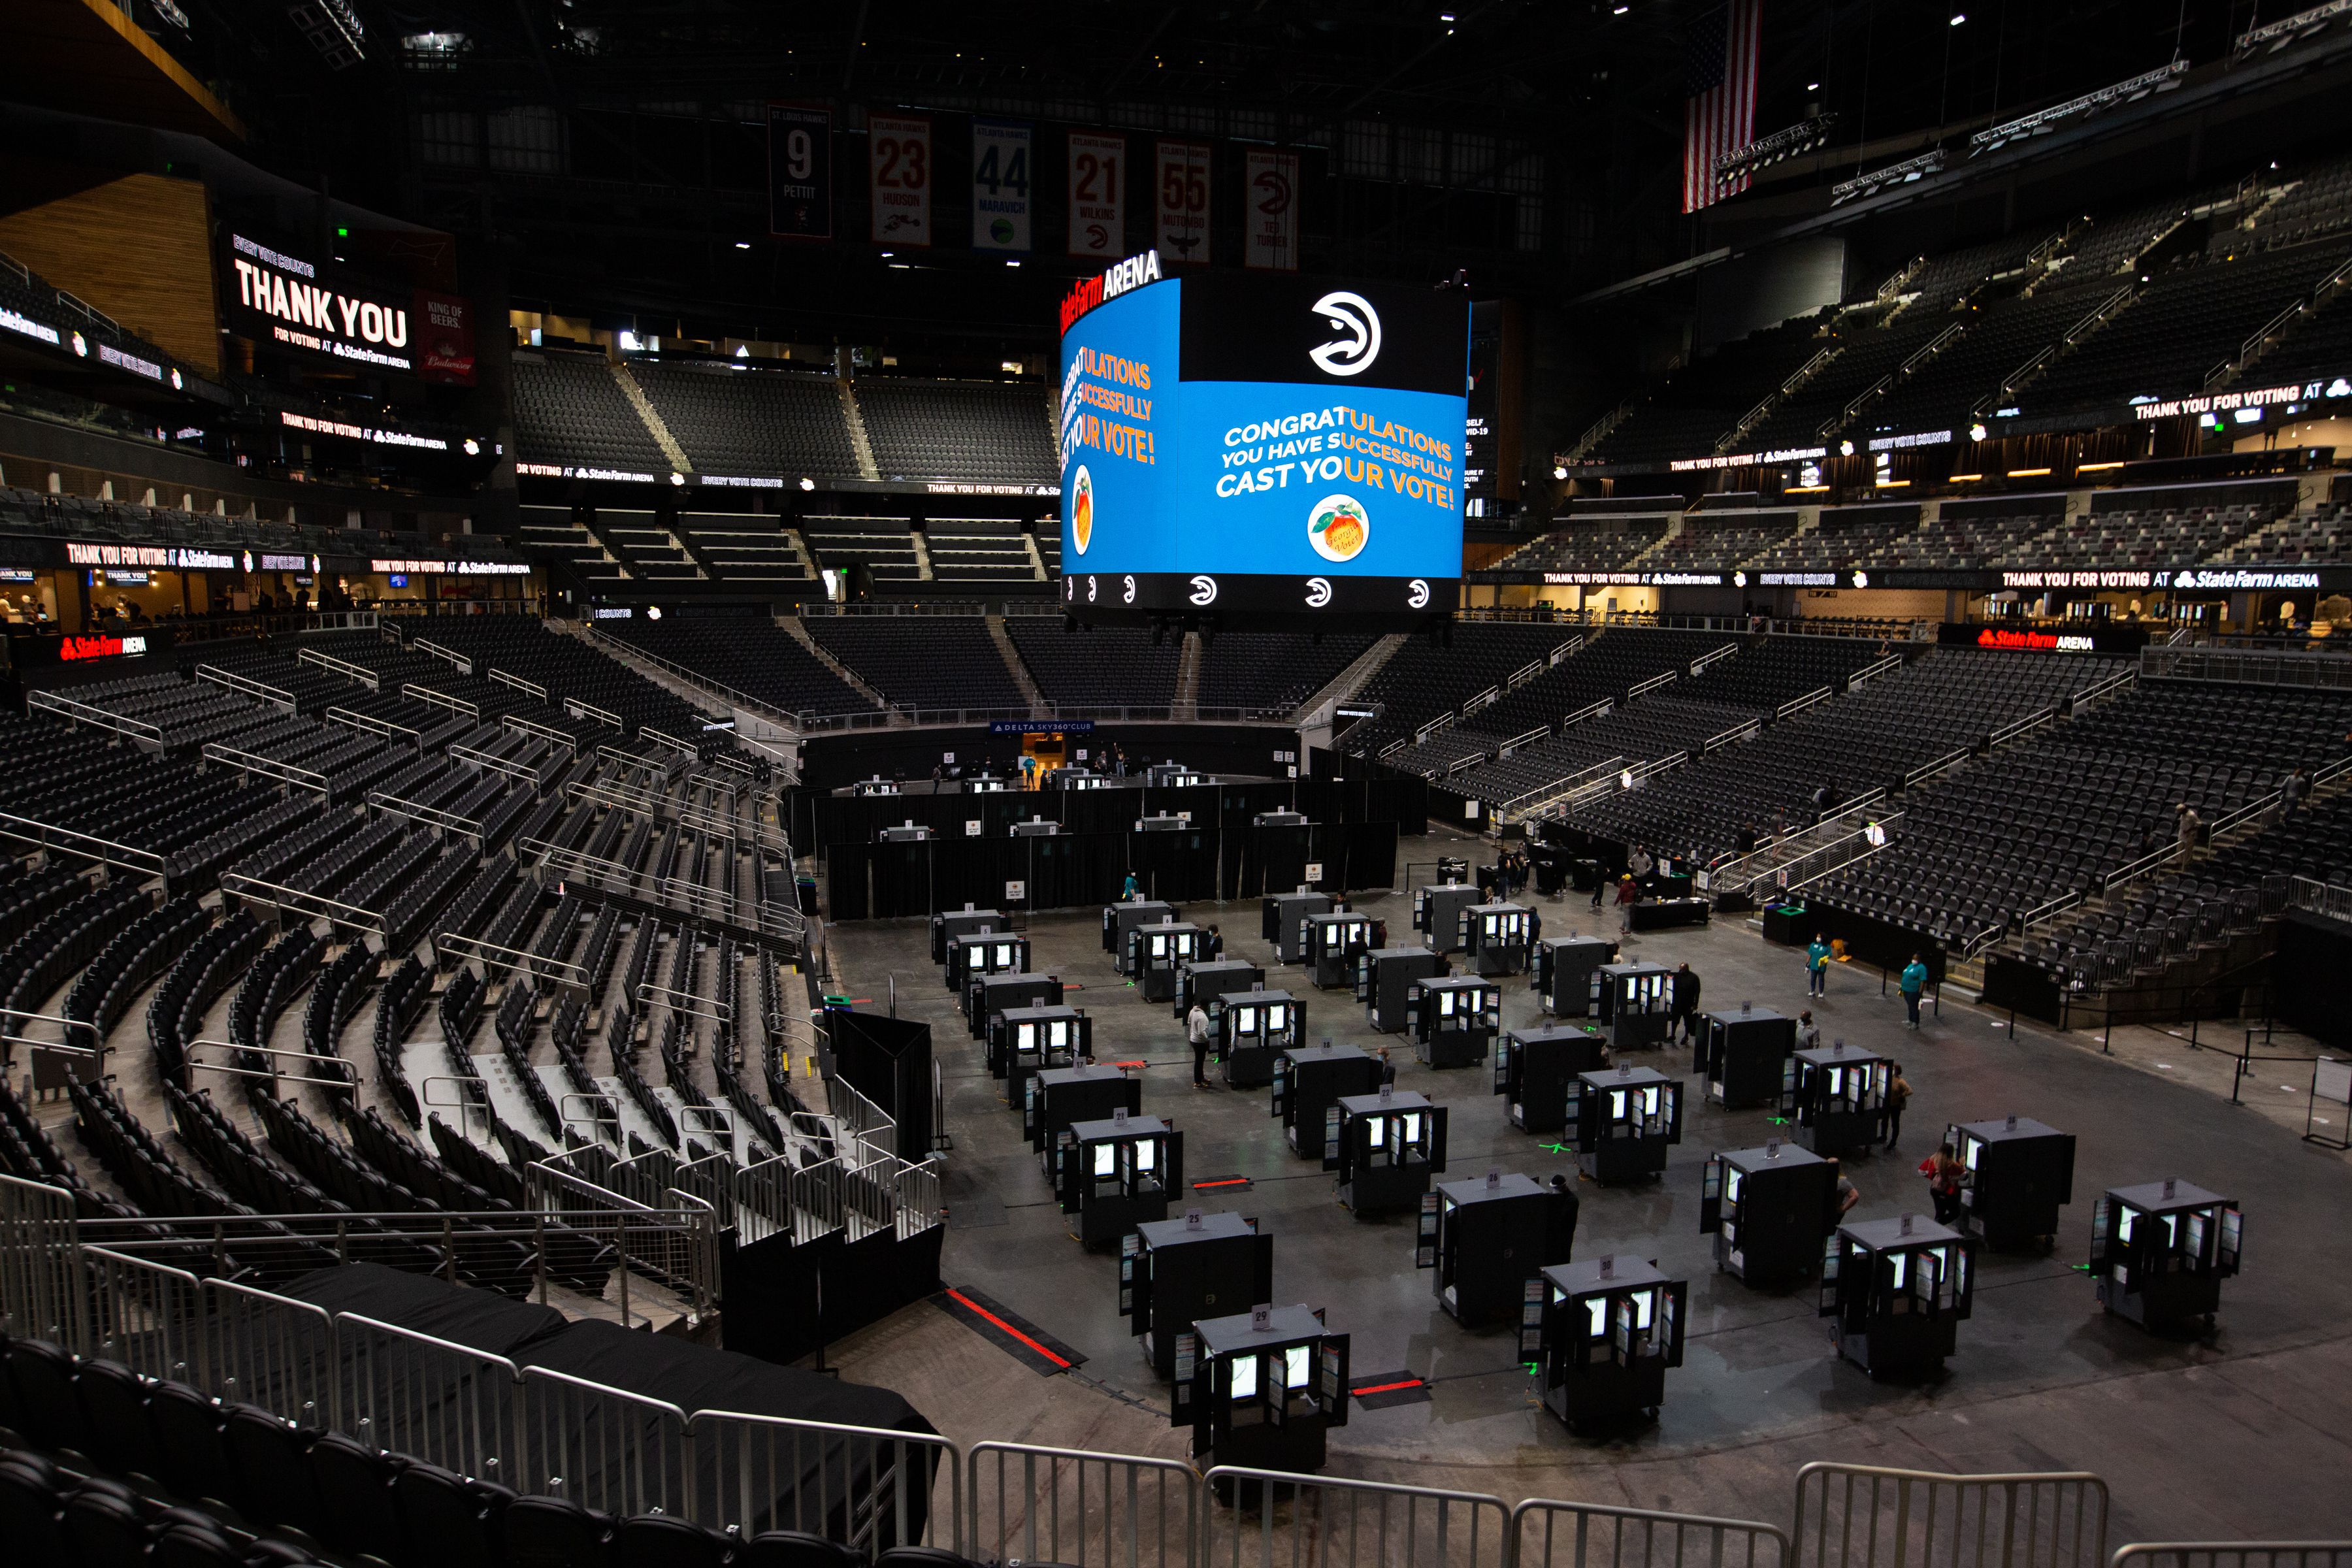 Voting booths inside Atlanta's State Farm Arena. Photo: Jessica McGowan/Getty Images